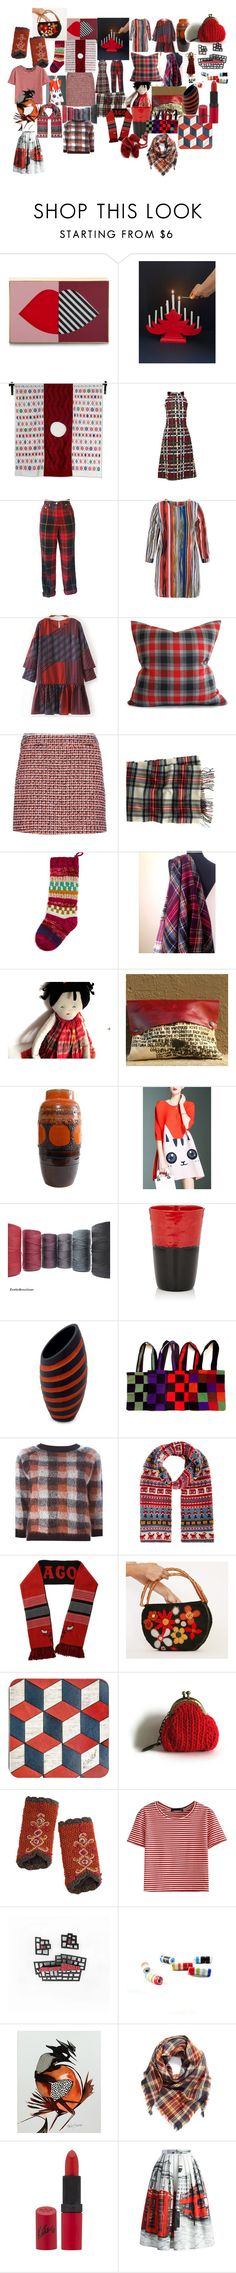 RED for YOU by talma-vardi on Polyvore featuring N-DUO, Moncler, WithChic, Moschino, dVb Victoria Beckham, Chicwish, Lulu Guinness, J.Crew, Overland Sheepskin Co. and BP.